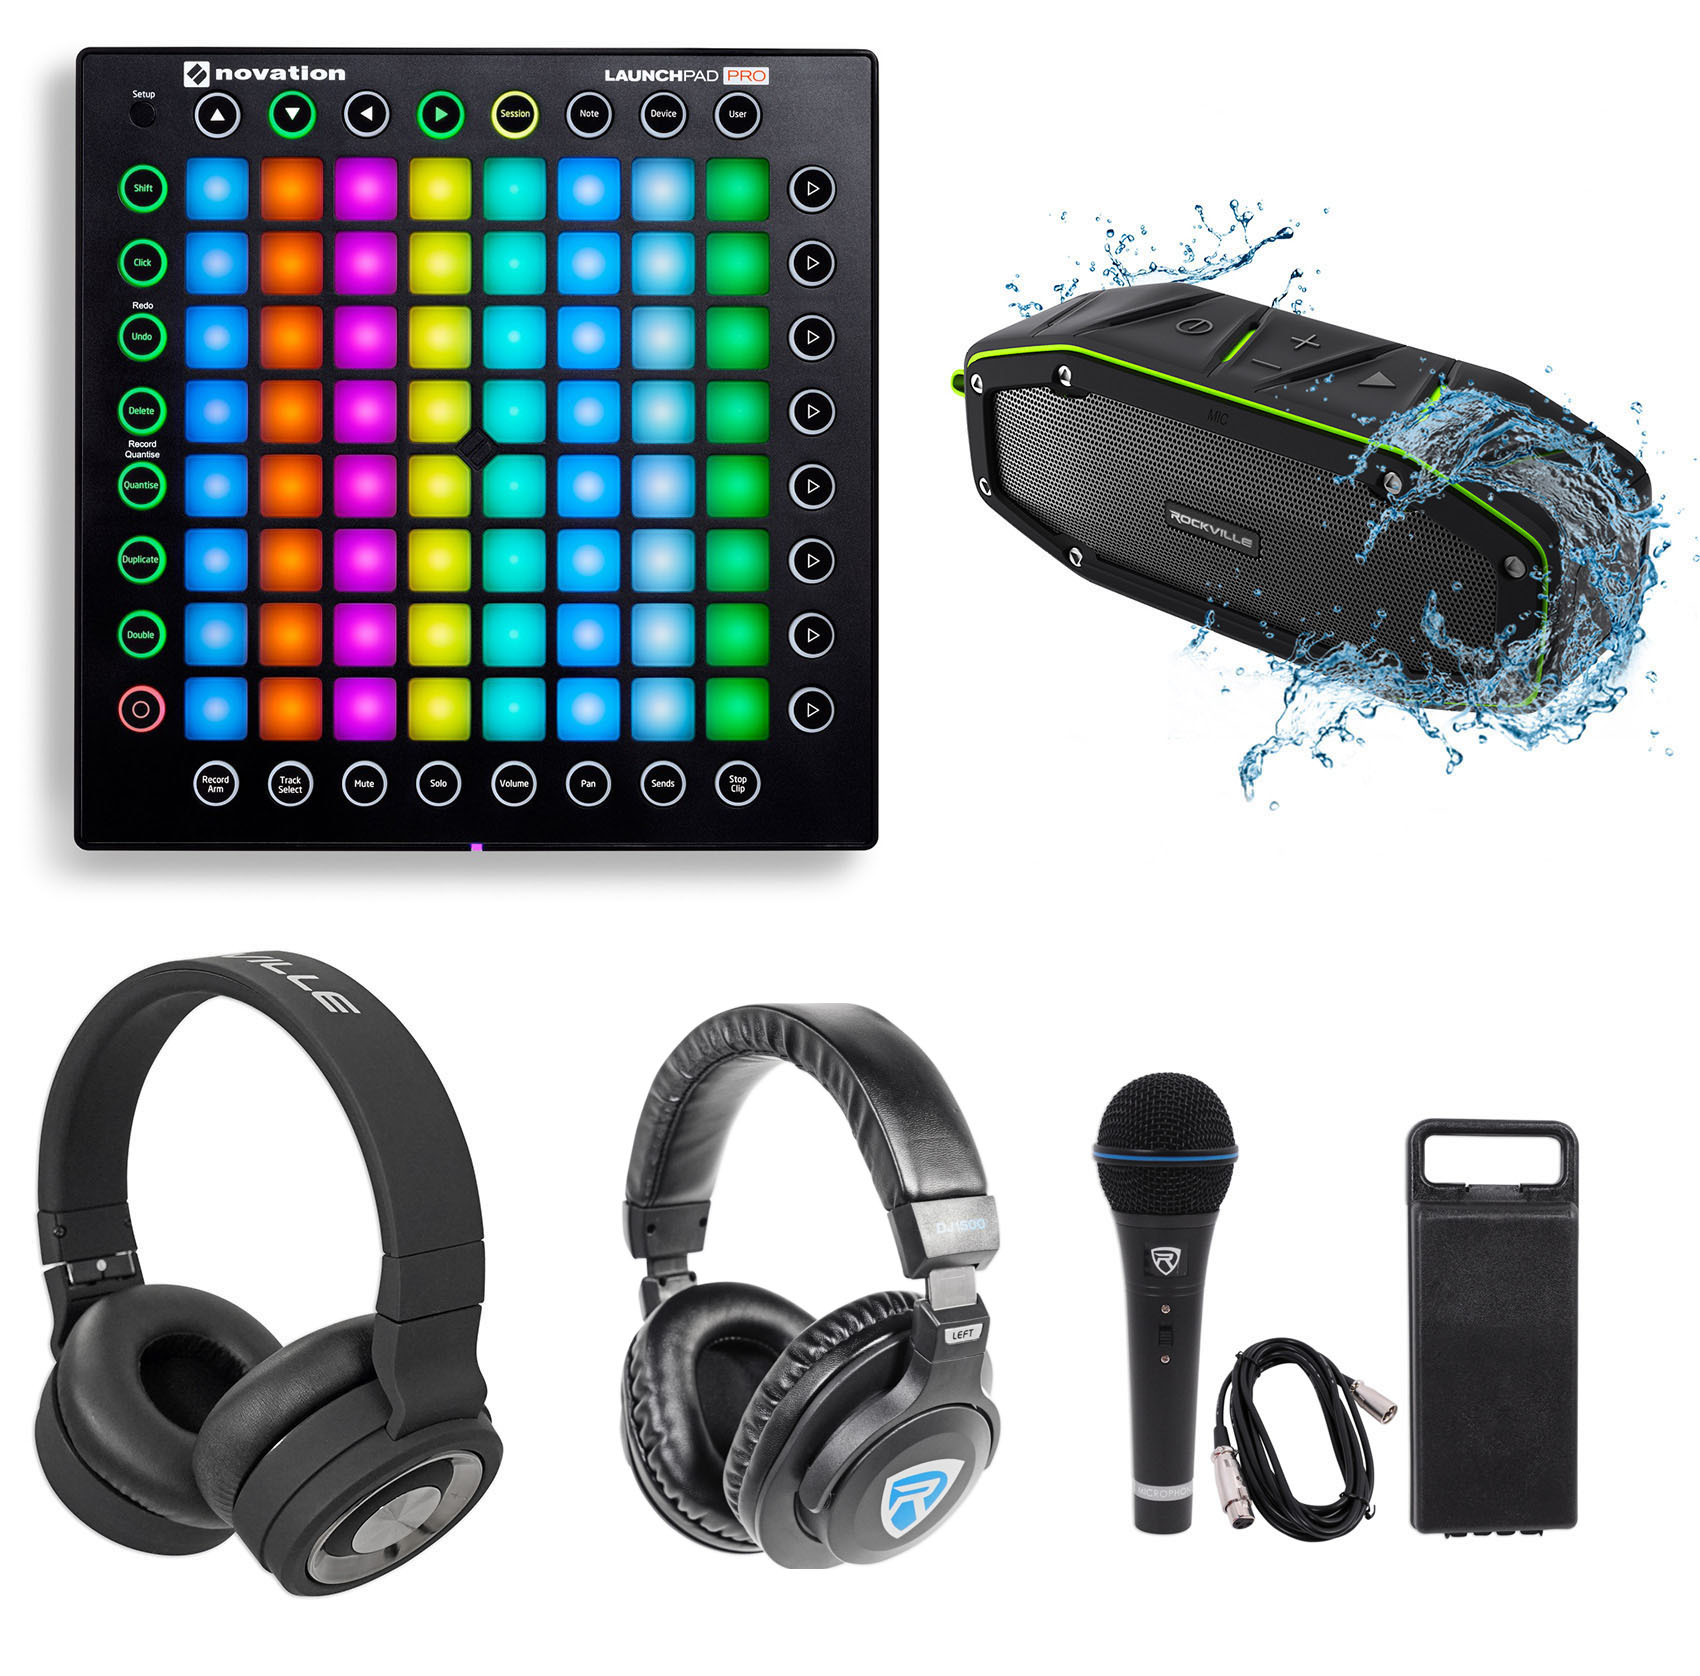 Novation Launchpad Pro USB MIDI RGB 64-Pad DJ Controller+Headphones+Speaker+Mic